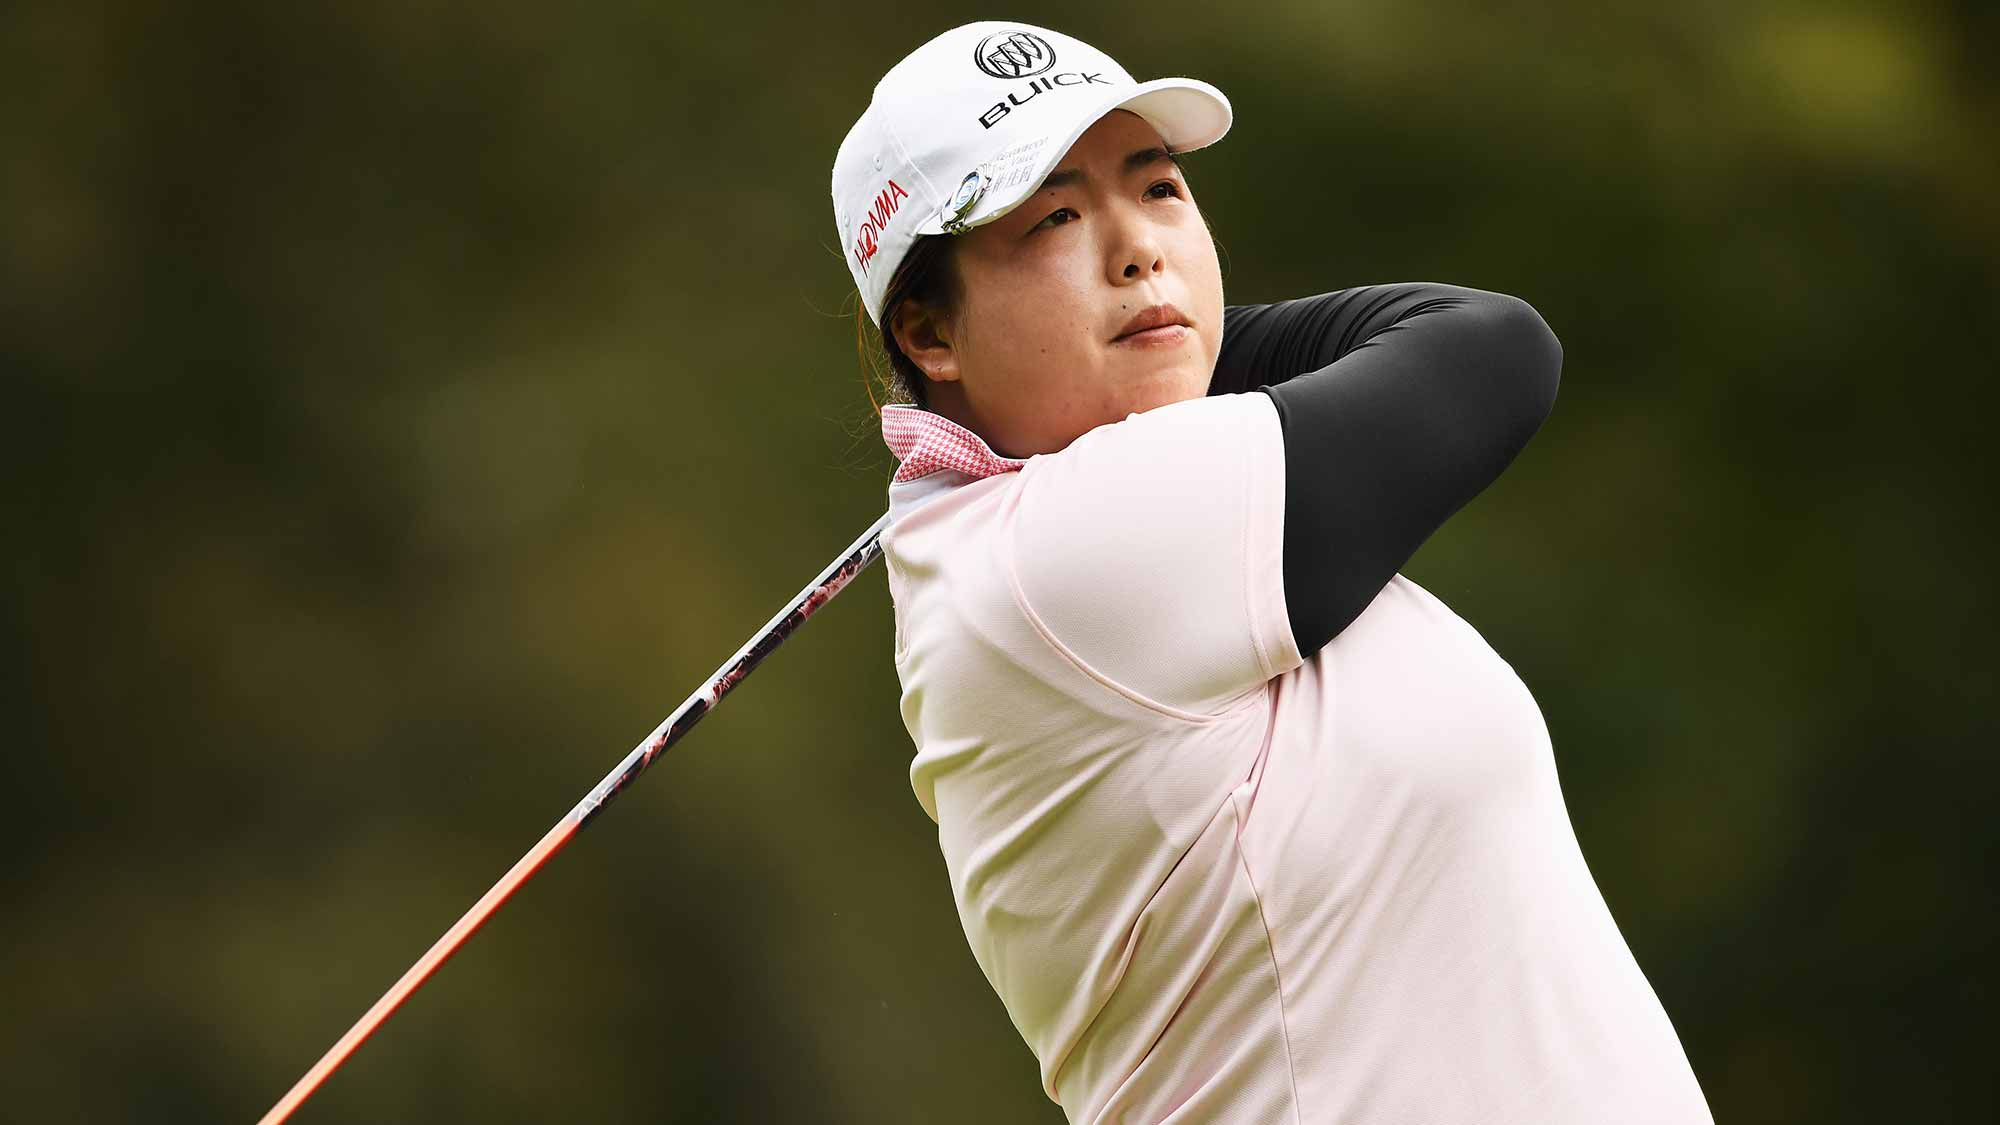 Shanshan Feng of China plays a shot during the third round of The Evian Championship